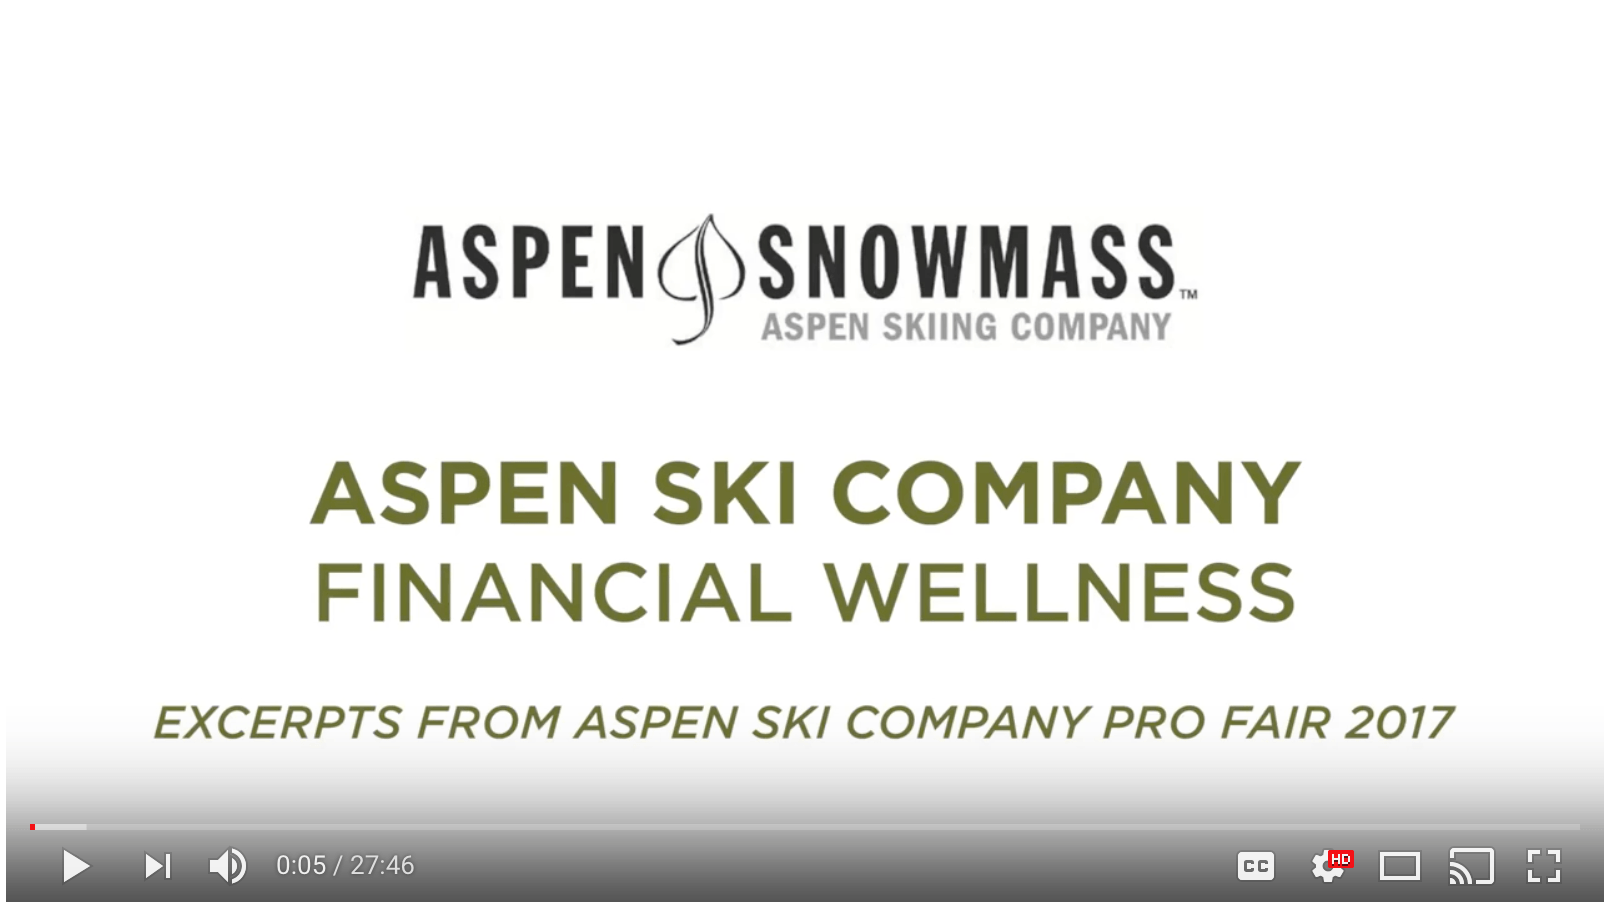 Danielle Howard Presents to the aspen ski company